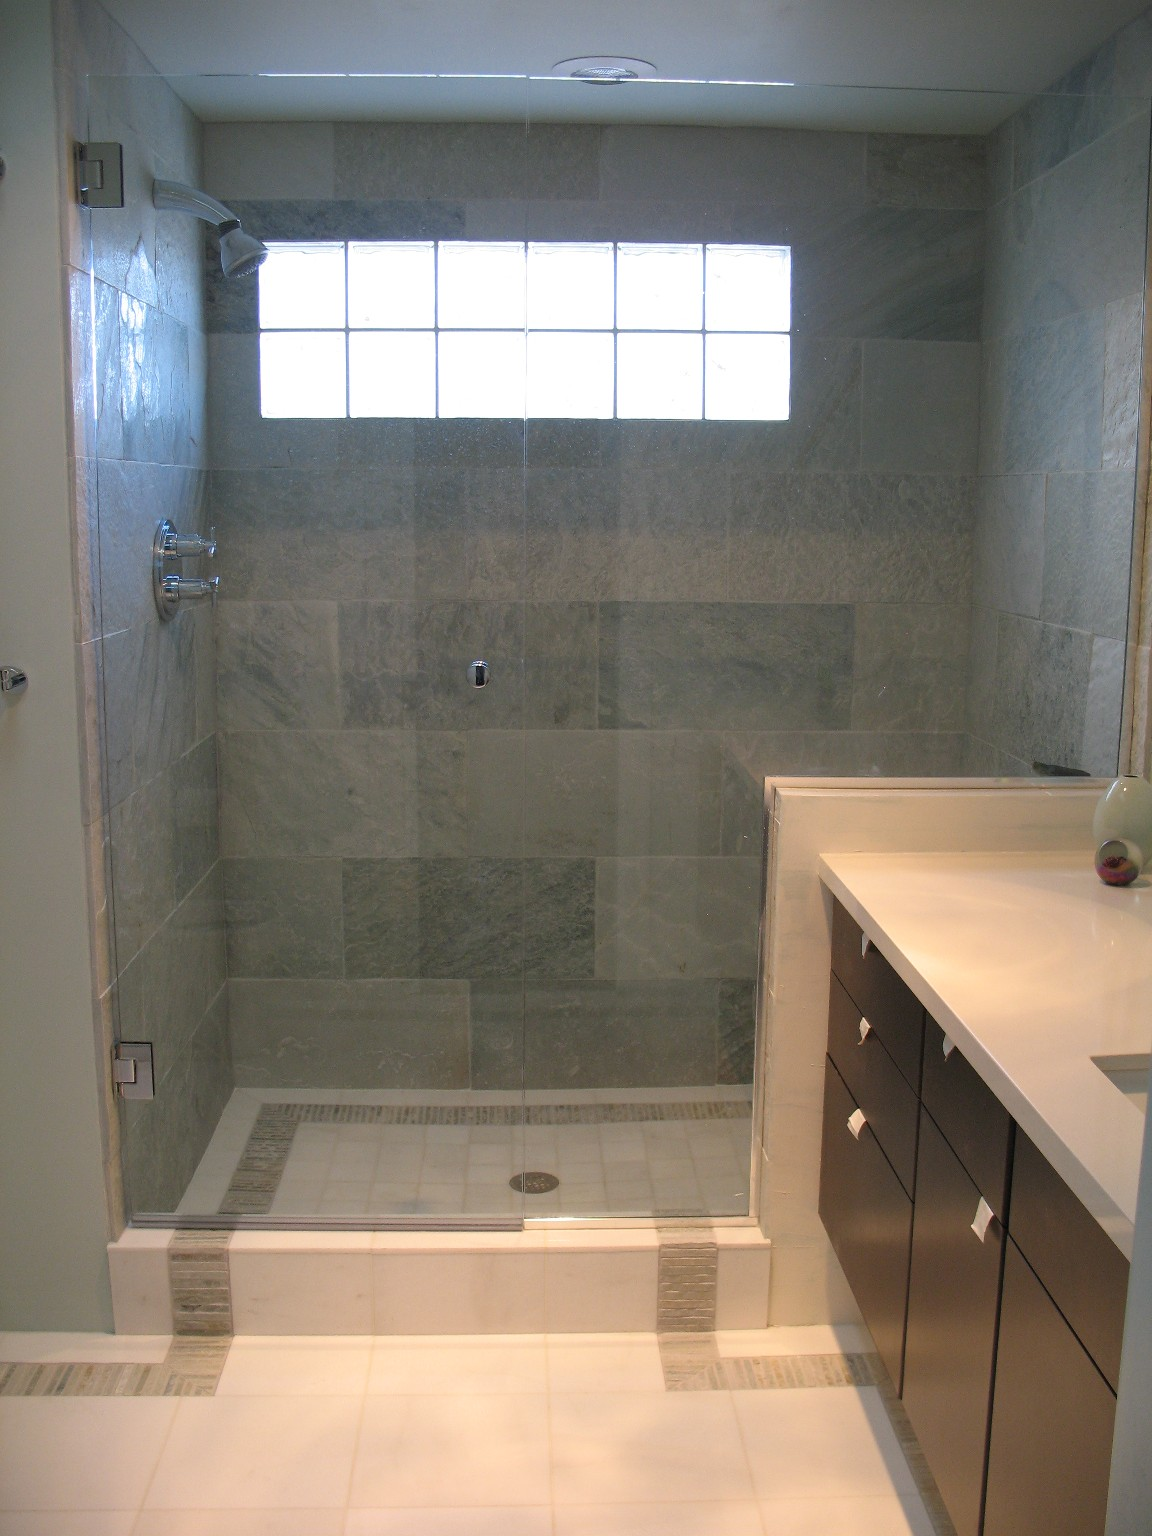 33 amazing ideas and pictures of modern bathroom shower Modern bathroom tile images